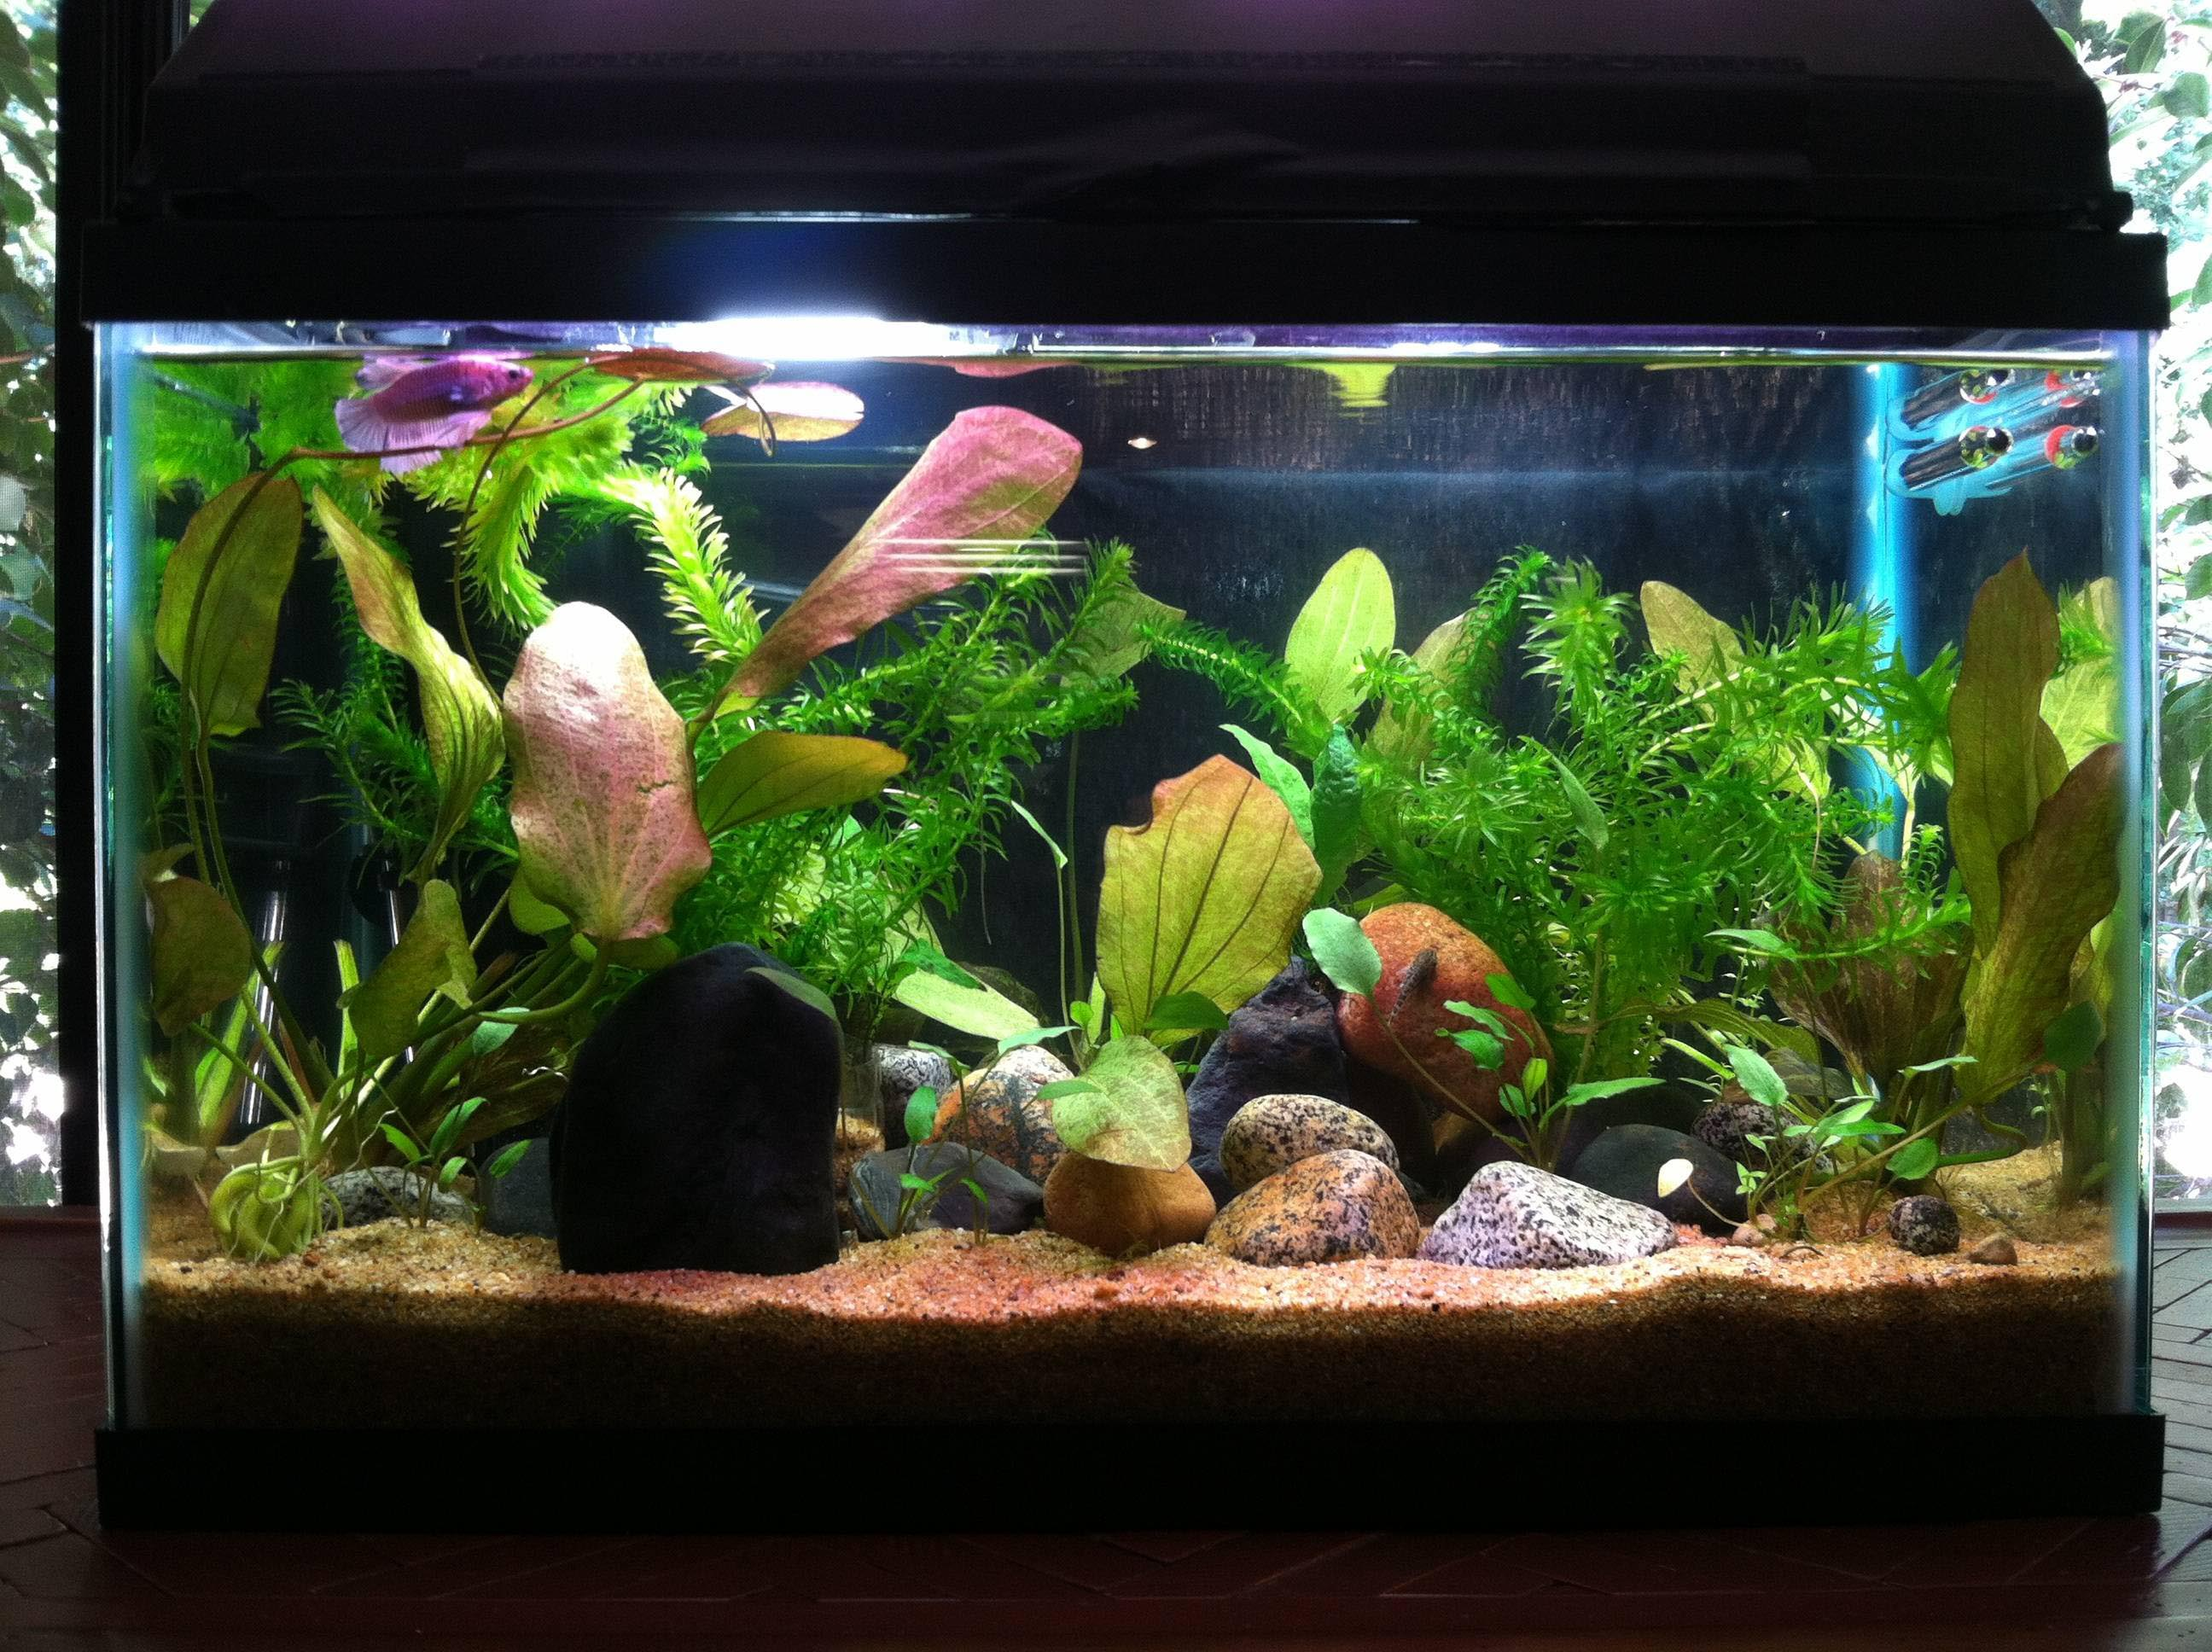 Freshwater aquarium betta fish aquarium design ideas for Betta fish tank ideas